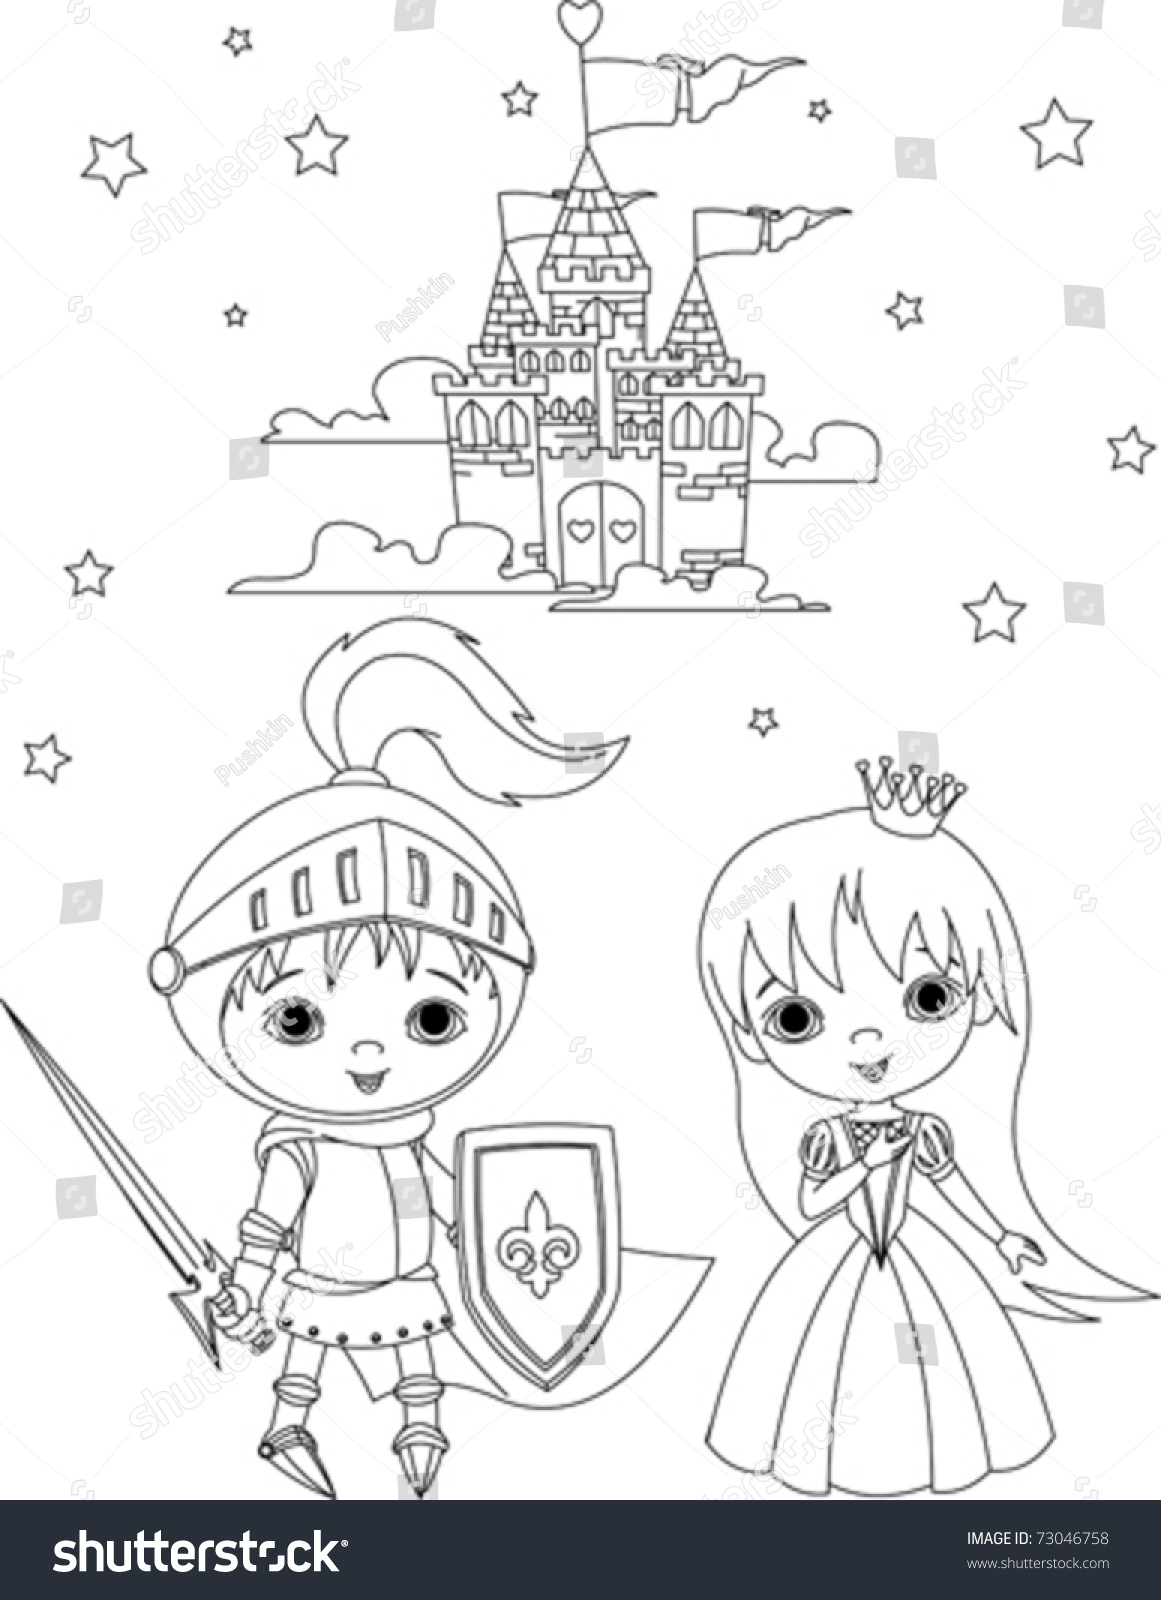 little boy knight princess coloring stock vector 73046758